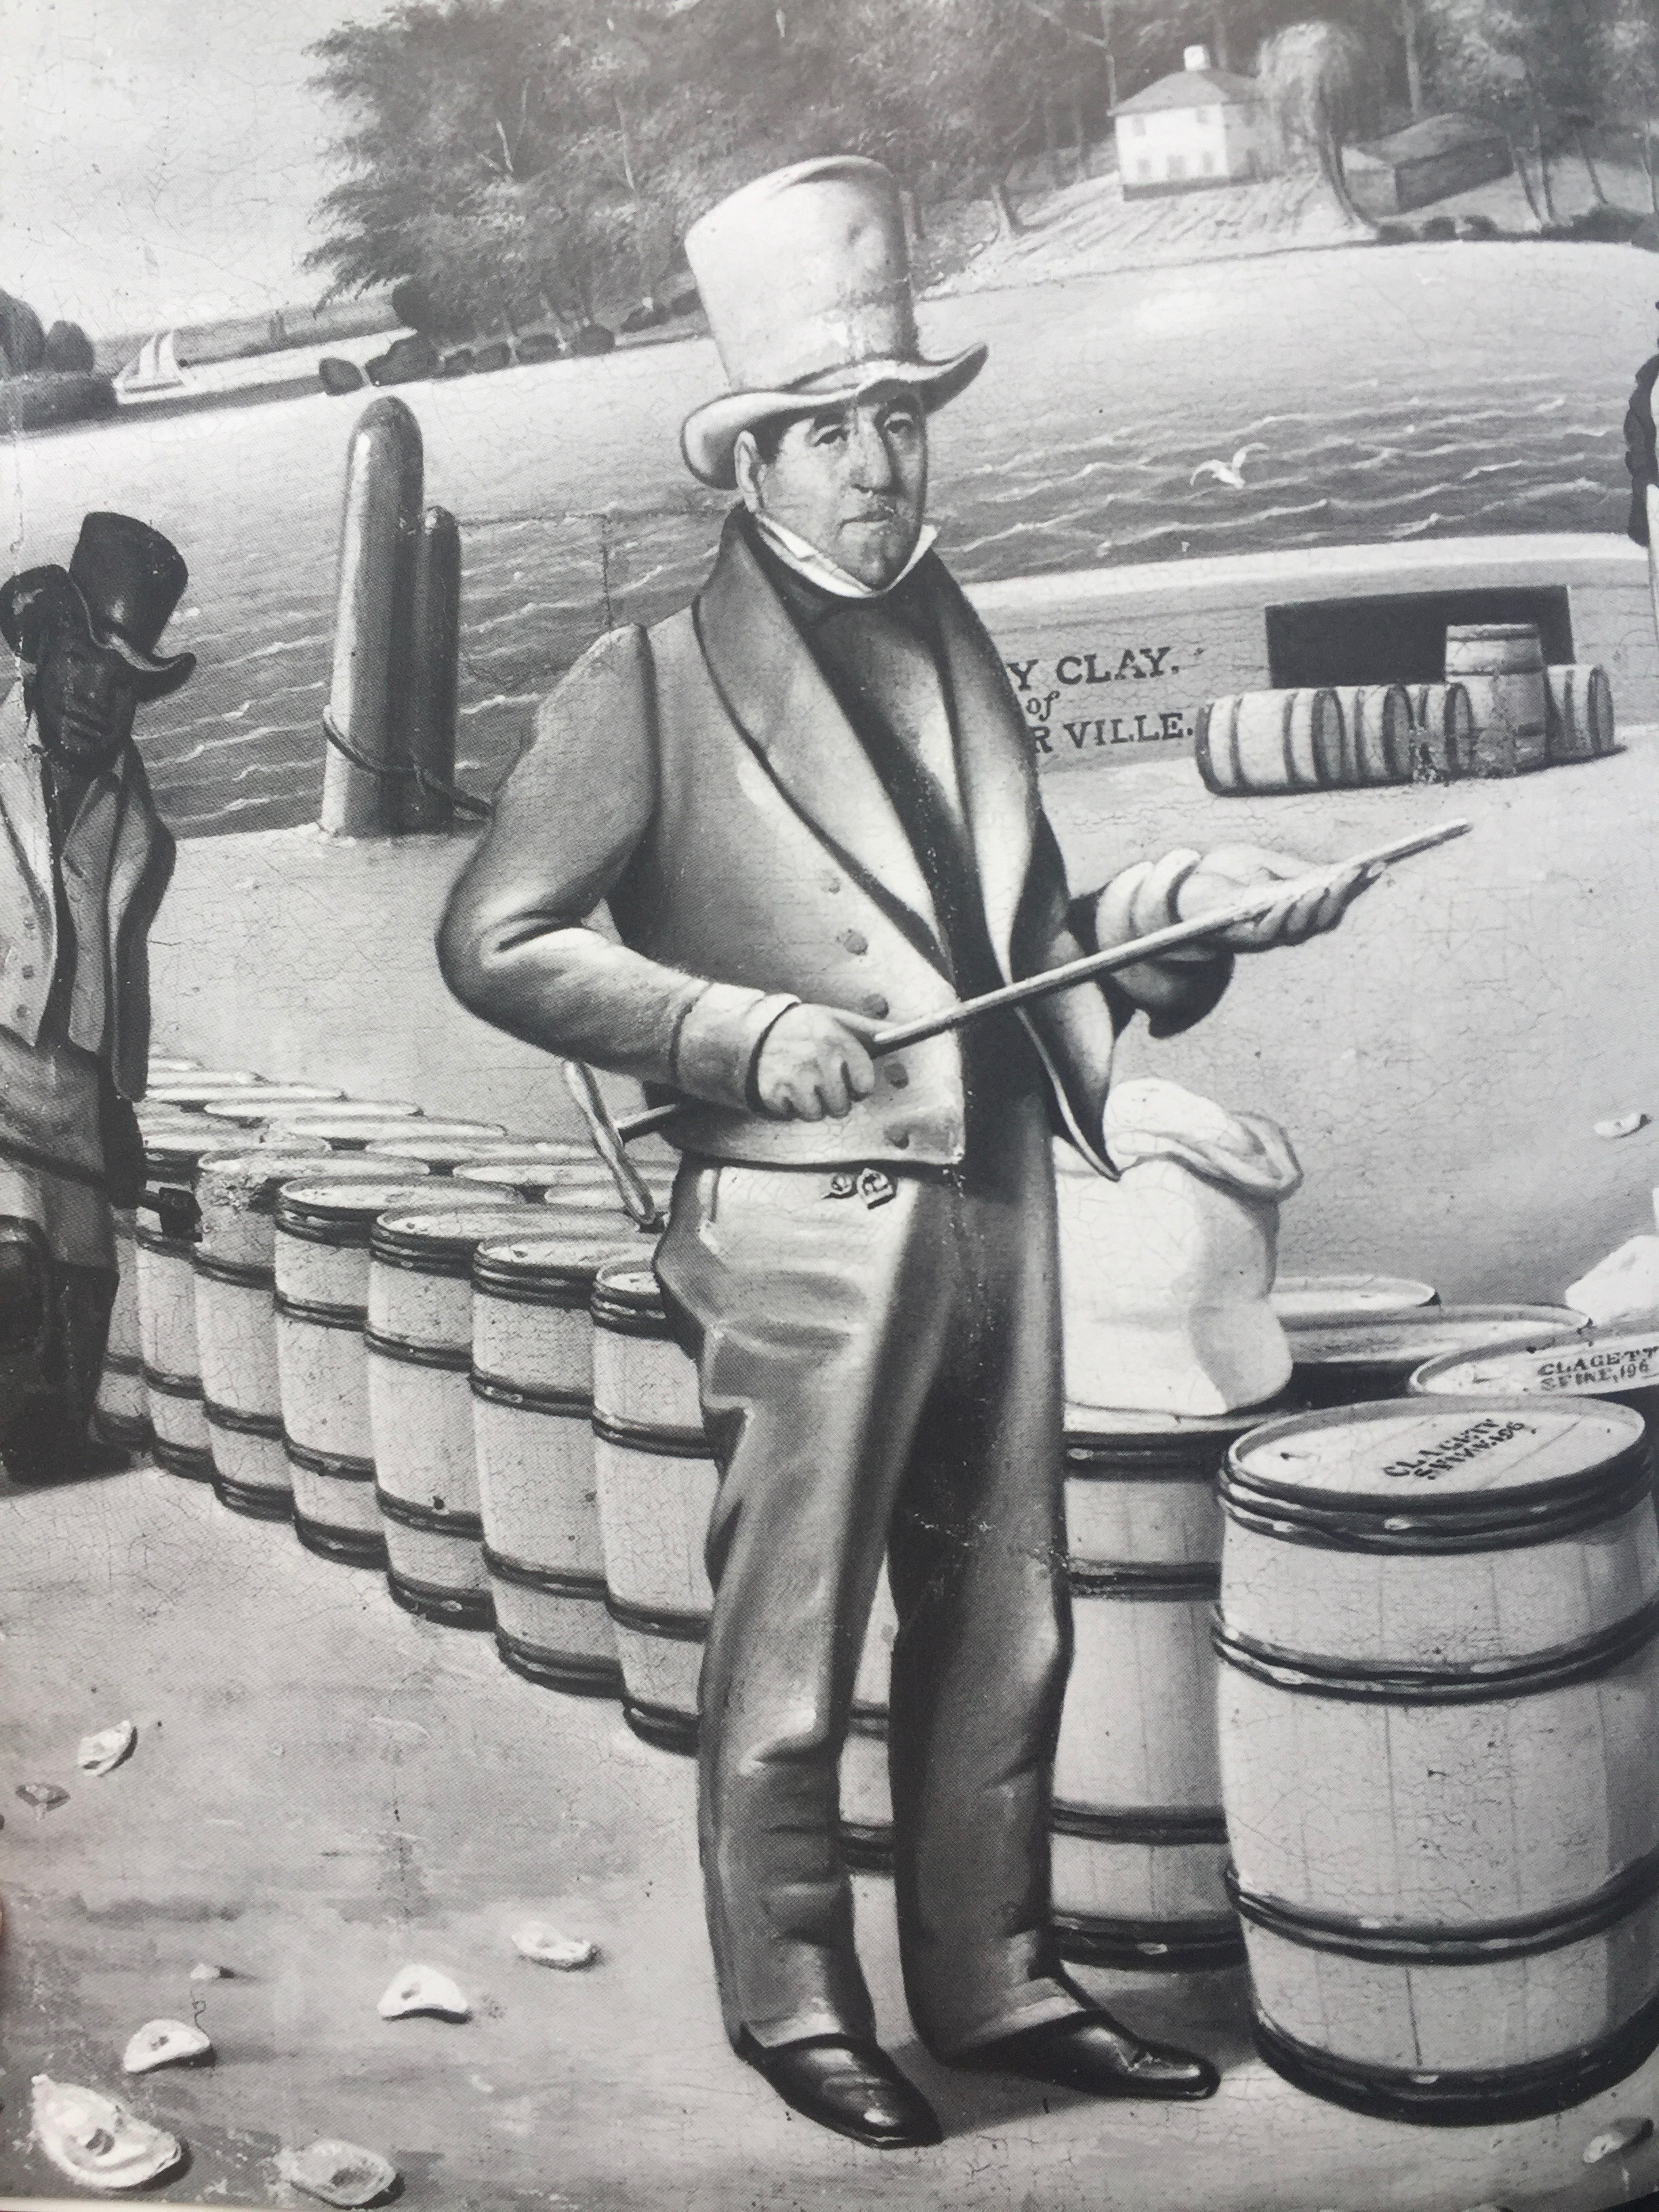 Two hundred years ago, Georgetown was renowned for the flour shipped from its port across the country. This illustration from Steve's book is of the Port of Georgetown's flour inspector, George Shoemaker.